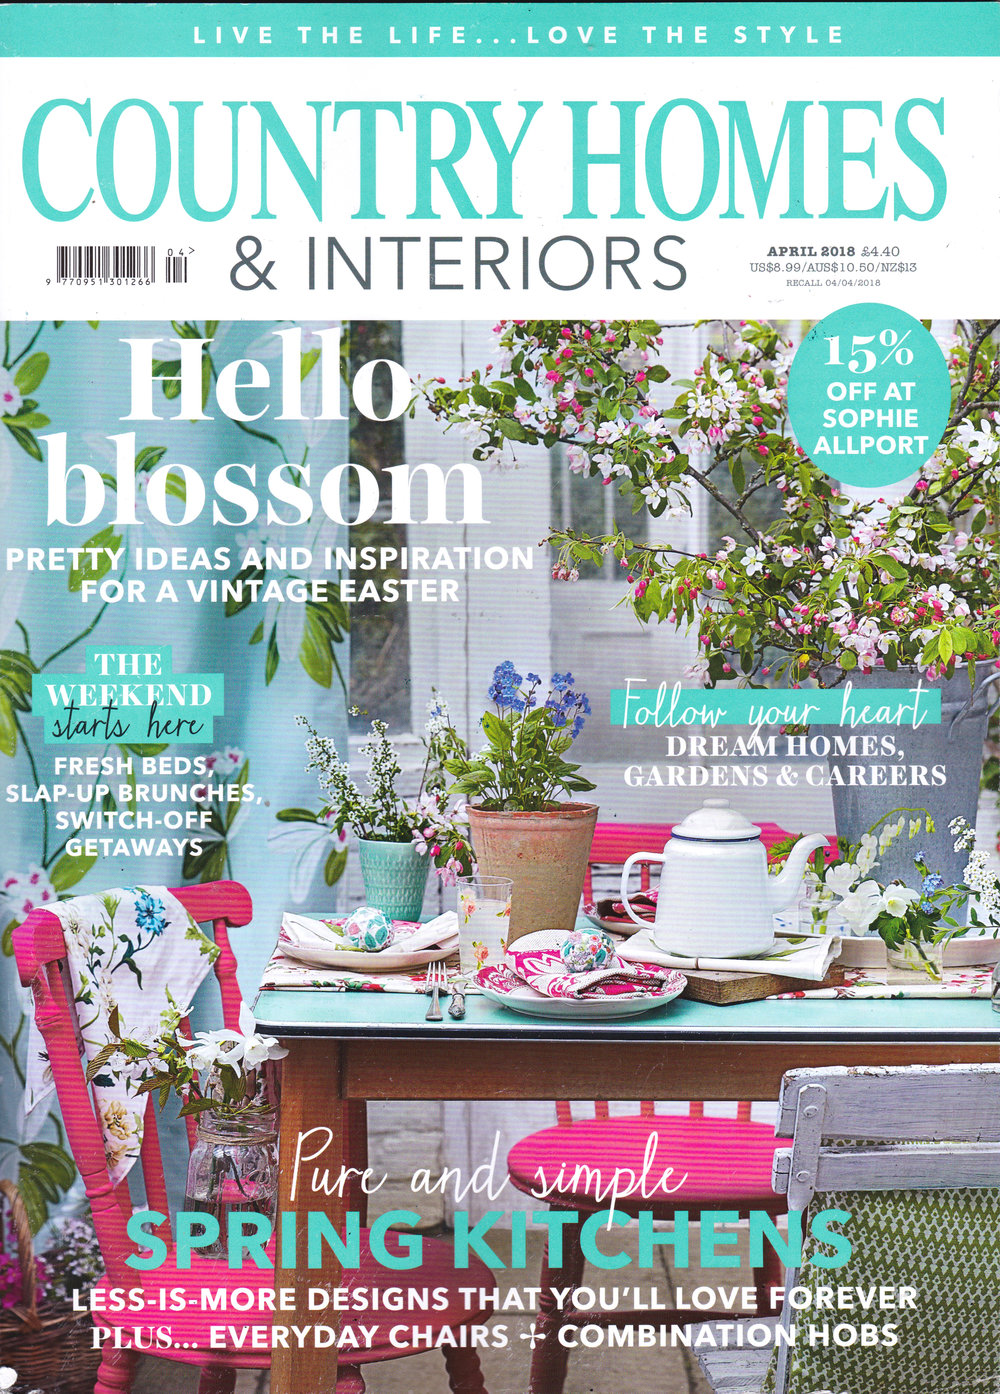 Country homes and interiors magazine feature on katiecharleson.com